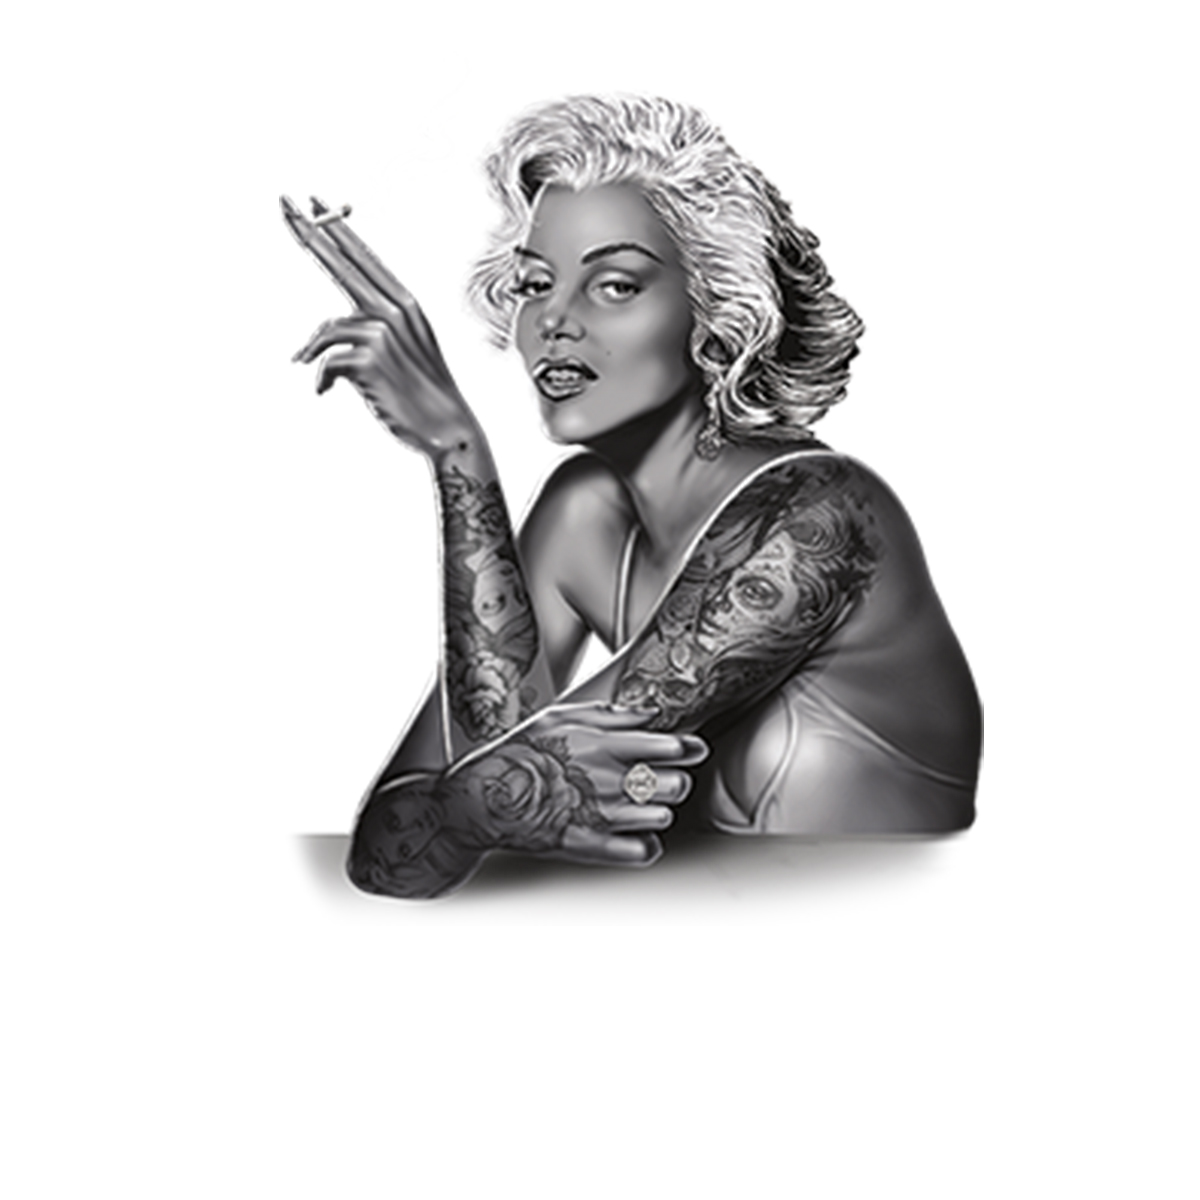 Marilyn-Monroe-Smoking-Tattoo-Men-T-shirt-XS-5XL thumbnail 6